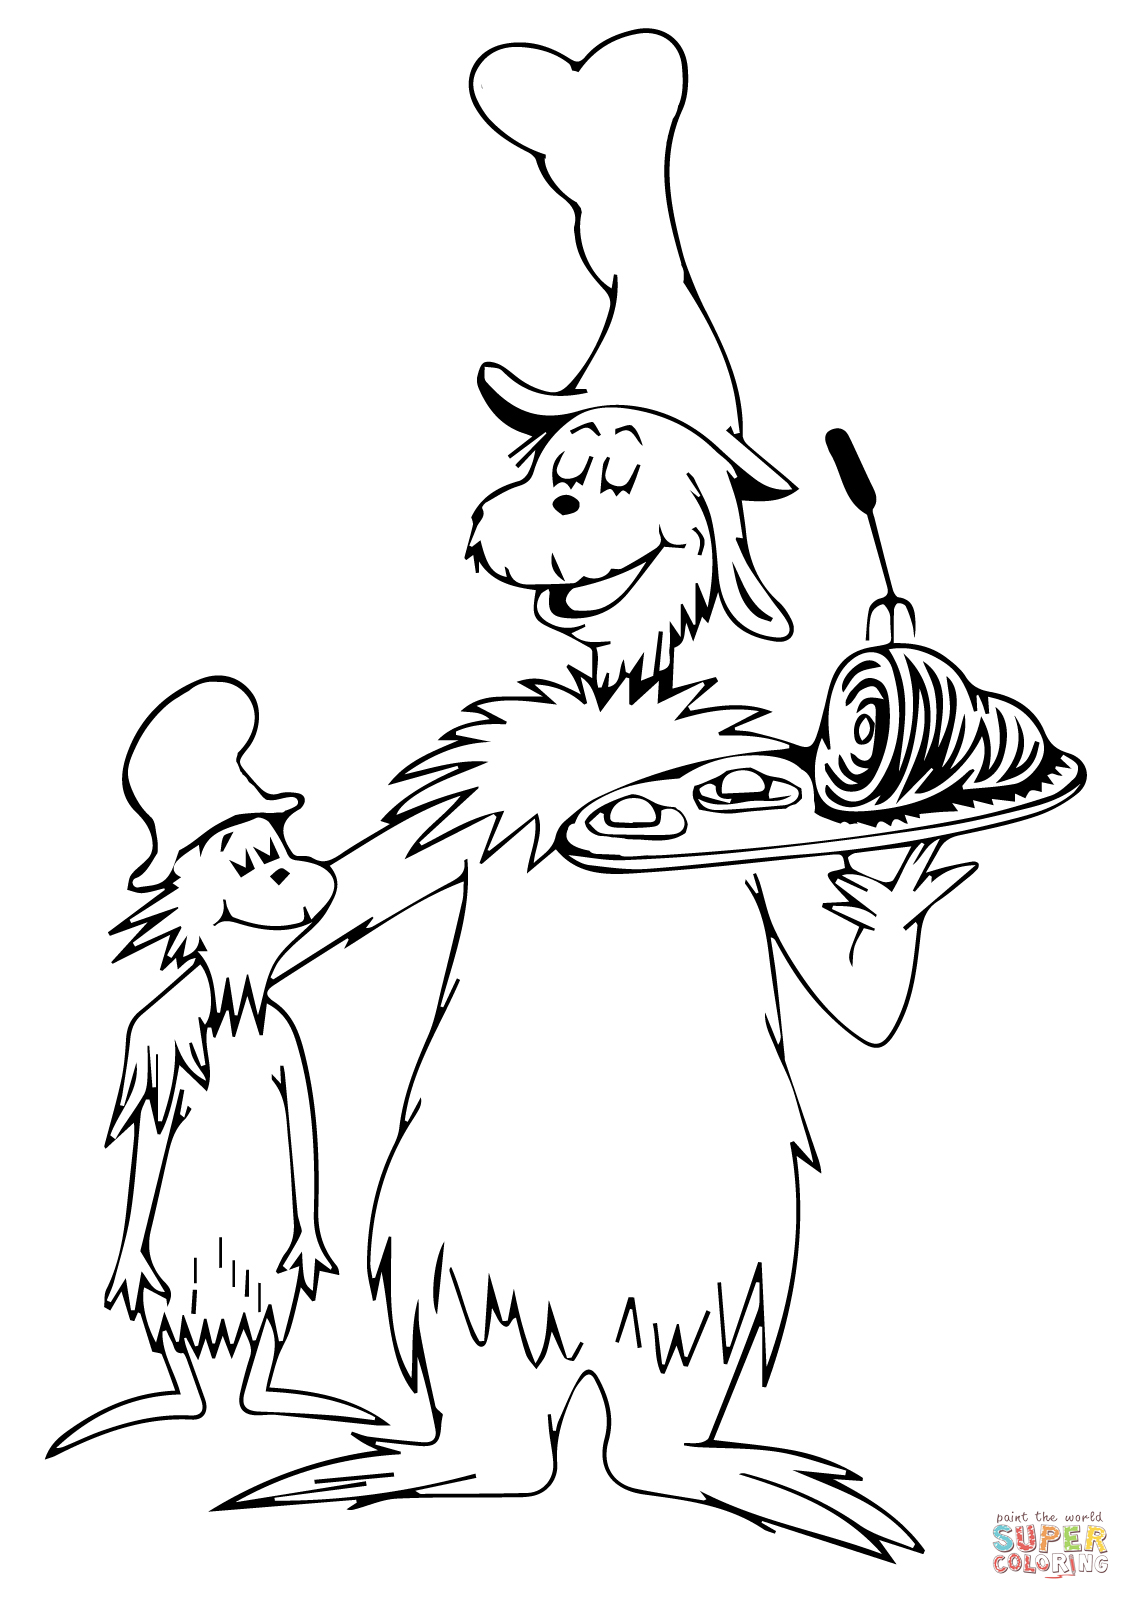 Dr Seuss Coloring Pages Green Eggs And Ham Az Coloring Pages Dr Seuss Printable Coloring Pages